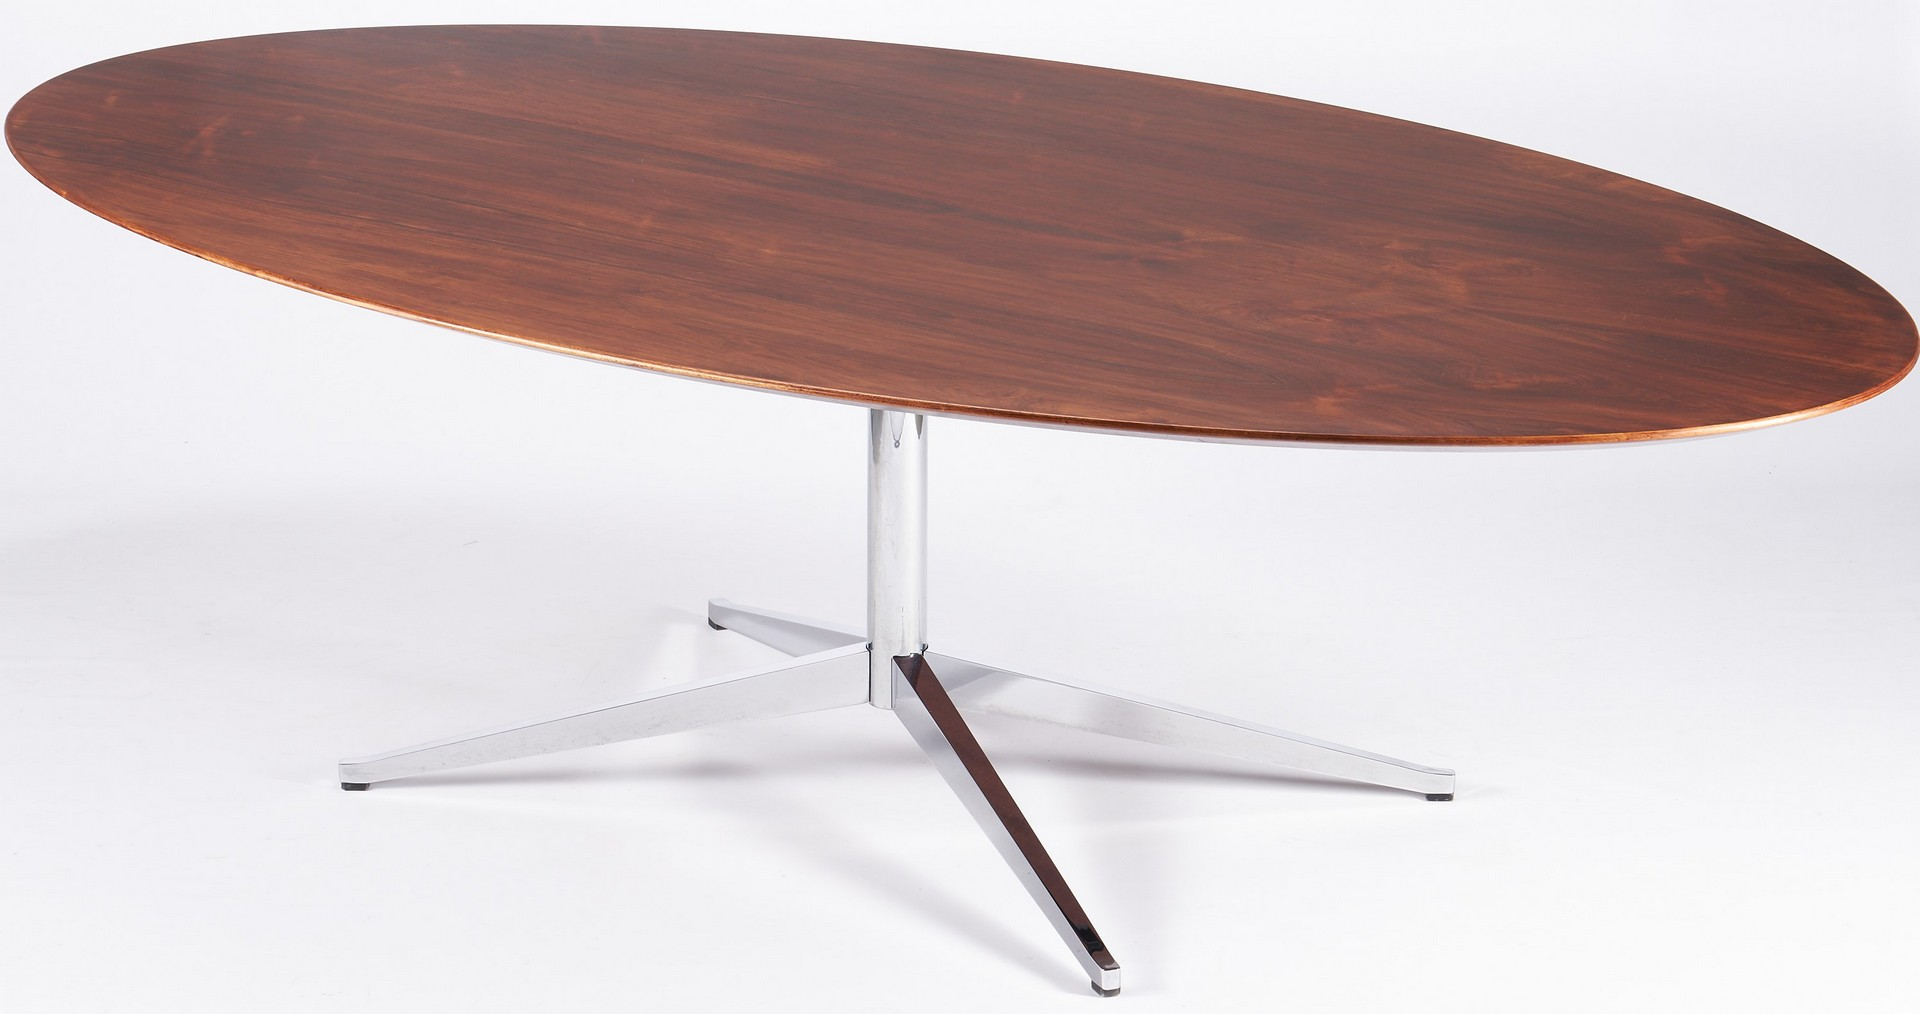 Lot 608: Florence Knoll Oval Table Desk, Dining or Conference Table